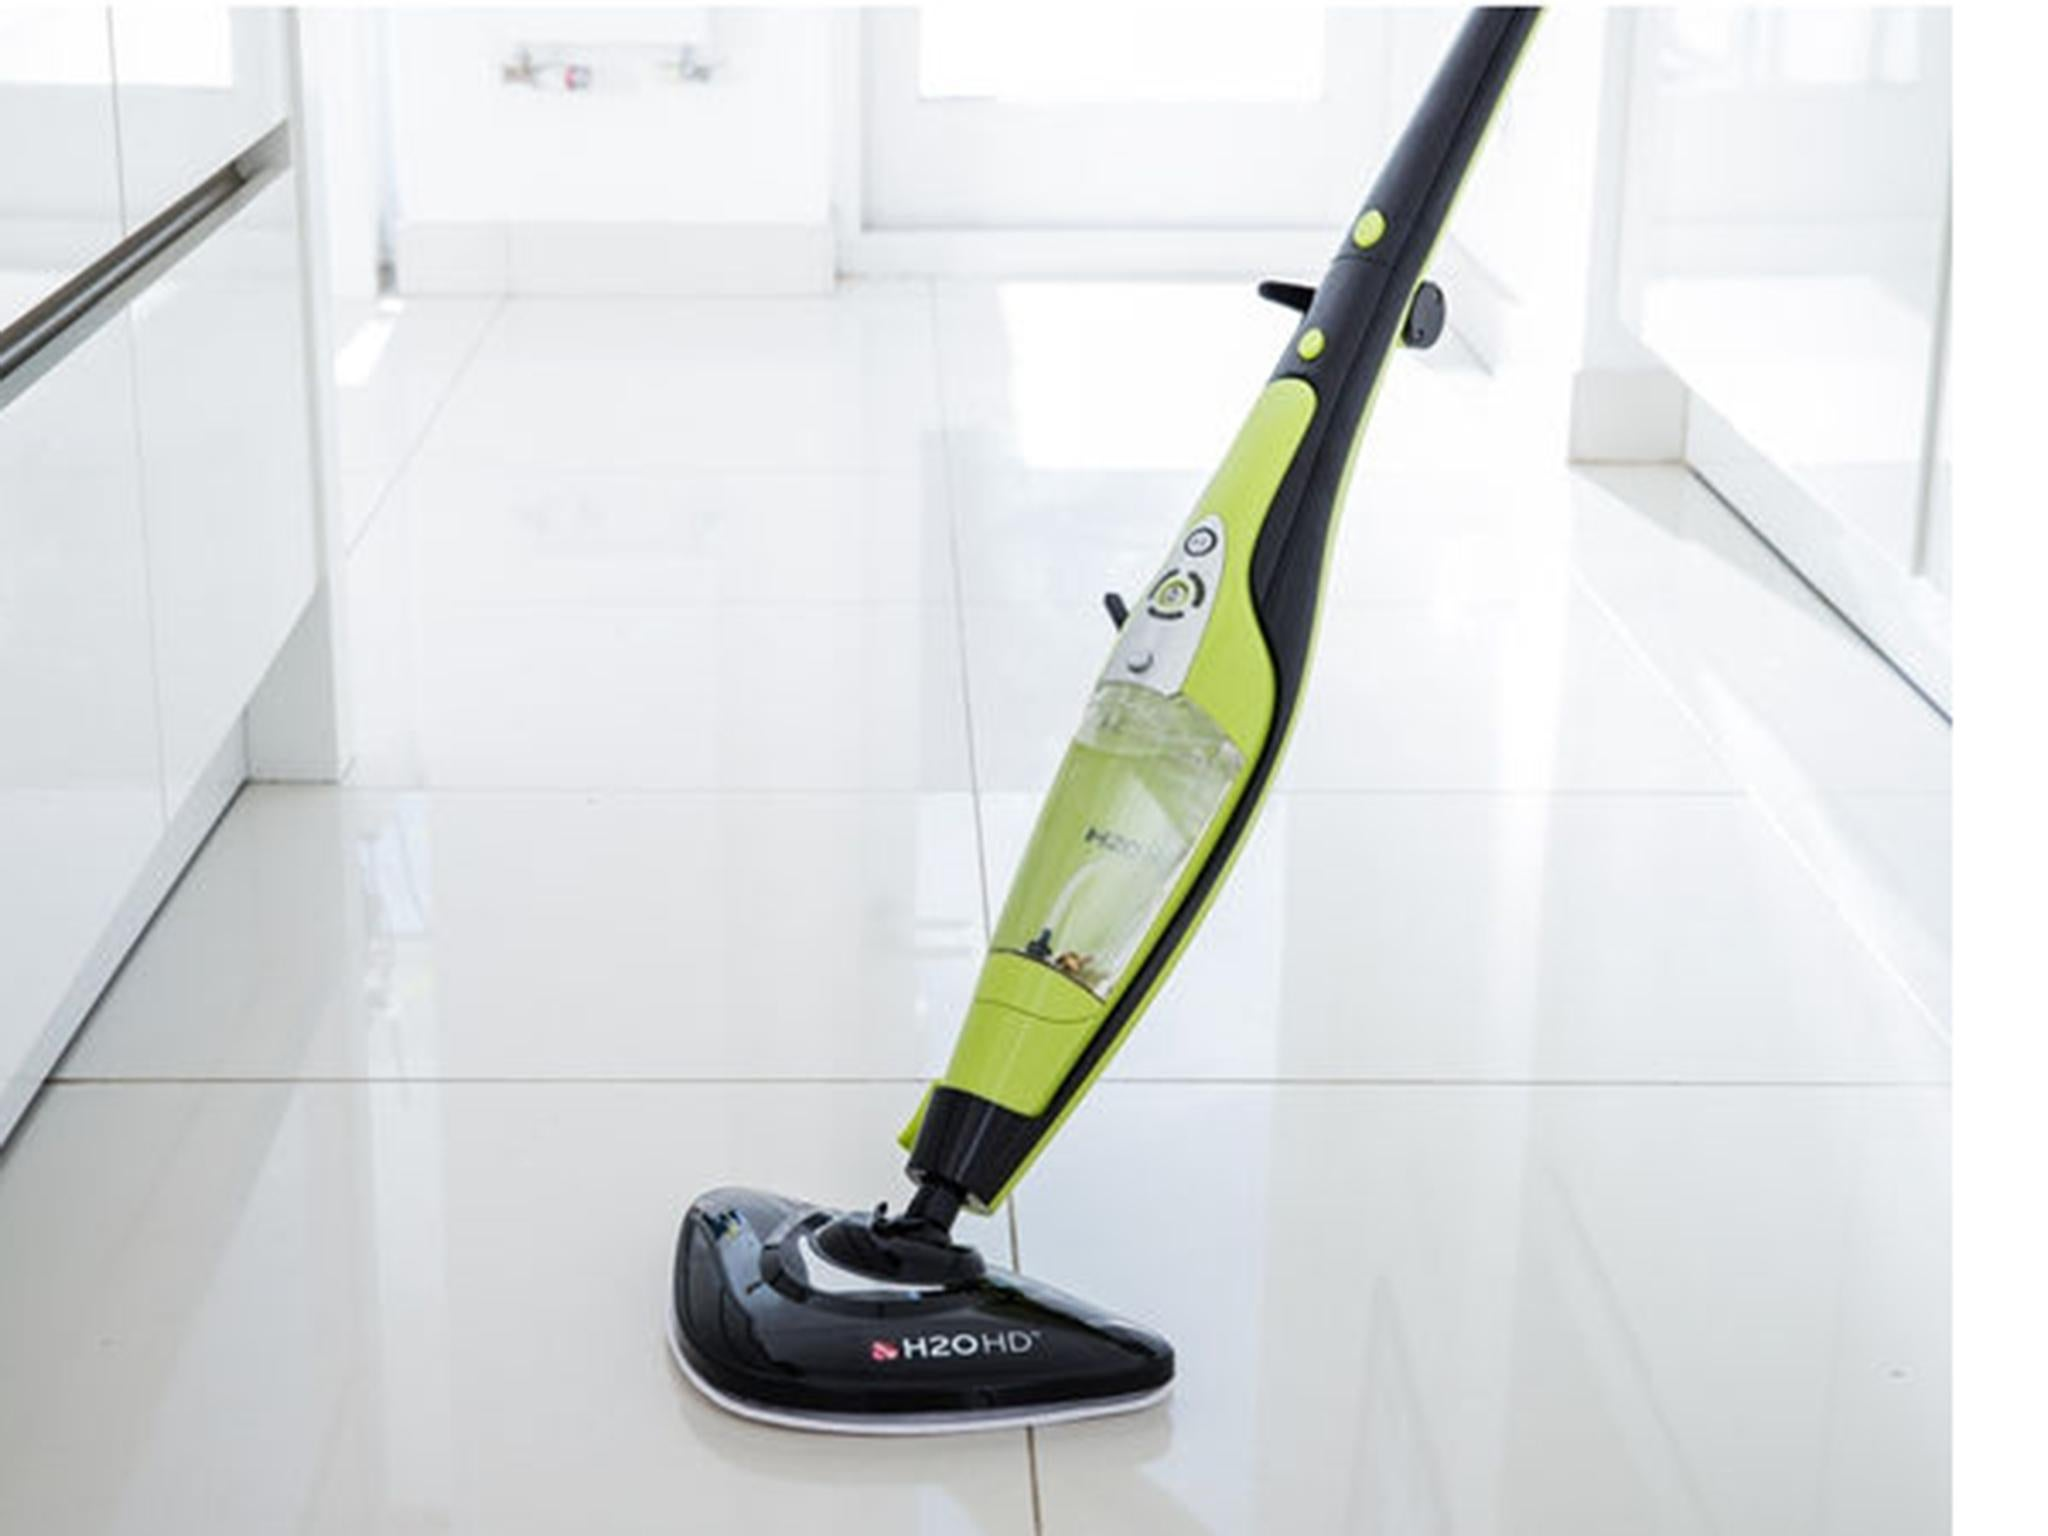 7 best steam cleaners | The Independent